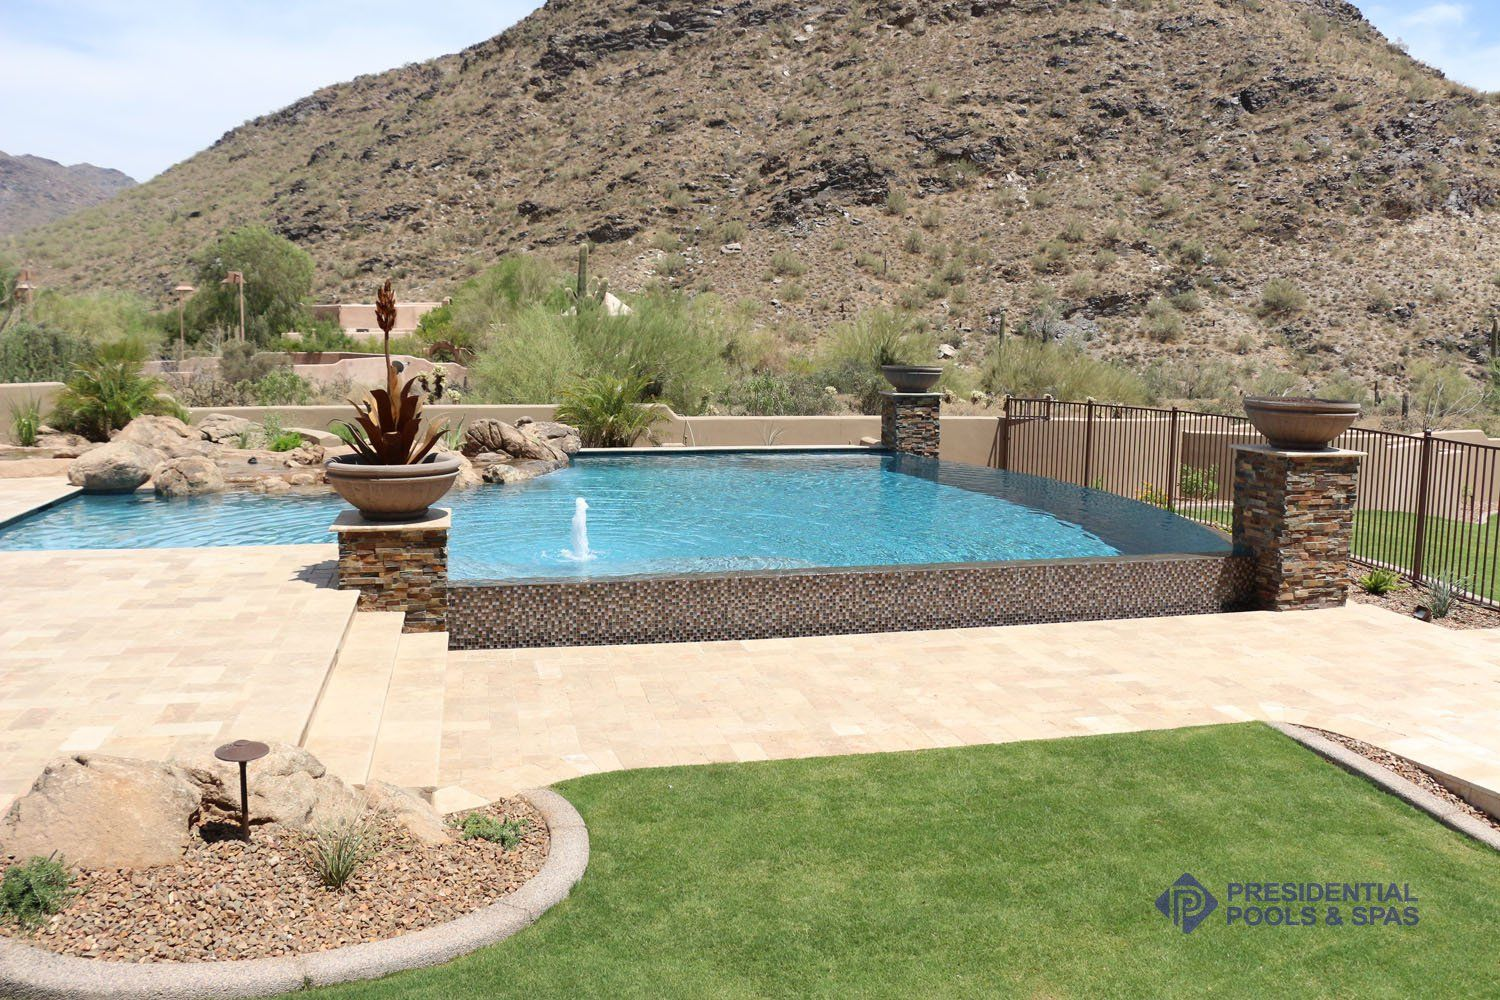 presidential pools in the desert pinterest backyard and